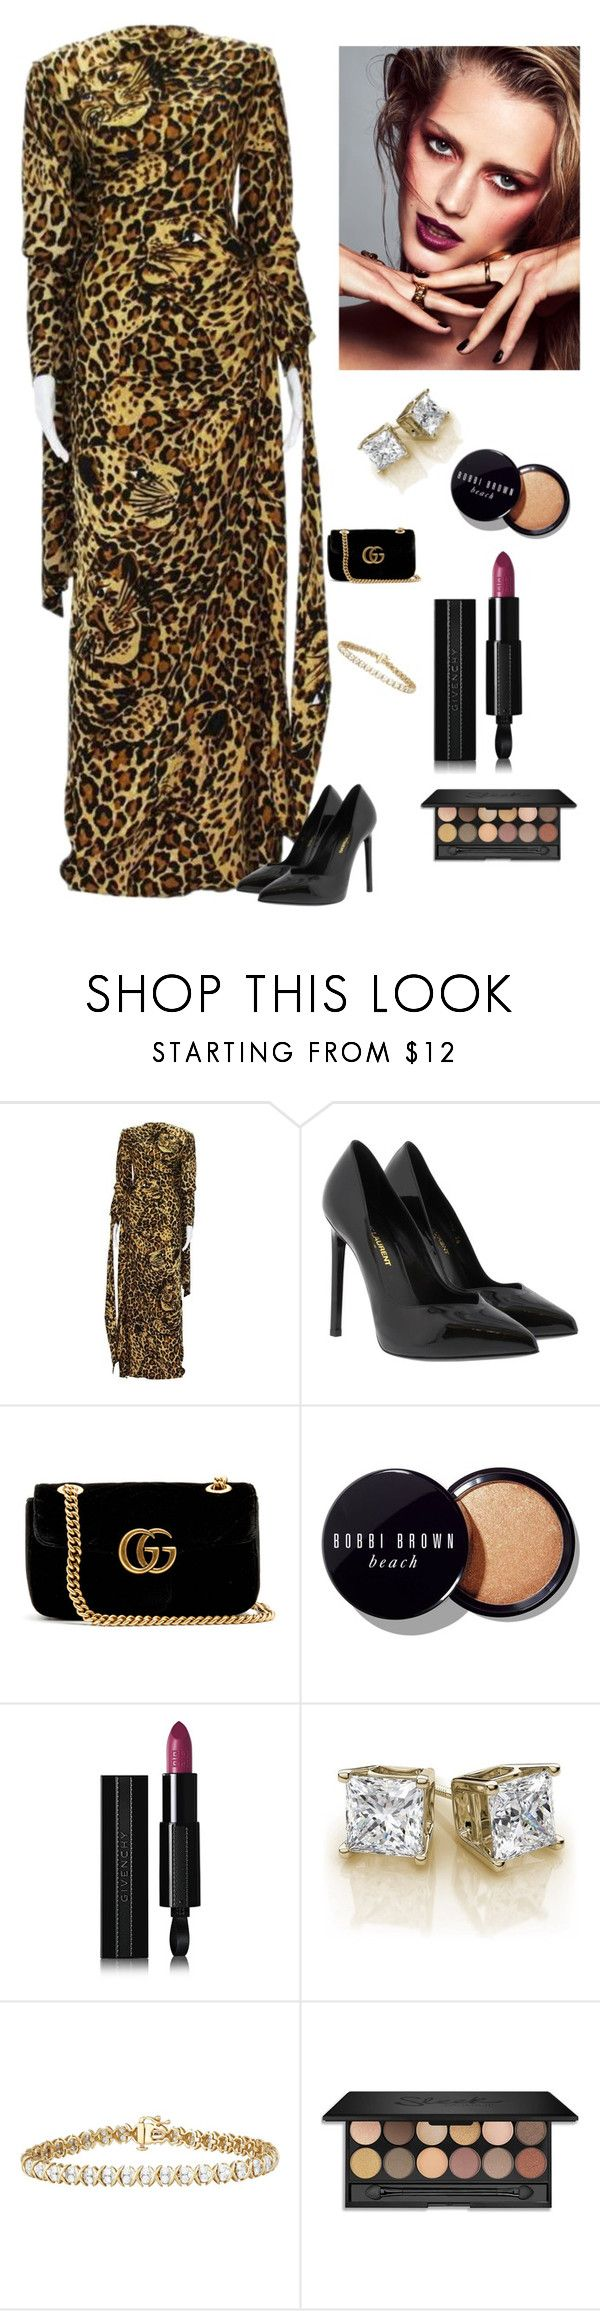 """""""Classy yet Elegant"""" by kotnourka ❤ liked on Polyvore featuring Yves Saint Laurent, Gucci, Bobbi Brown Cosmetics and Givenchy"""